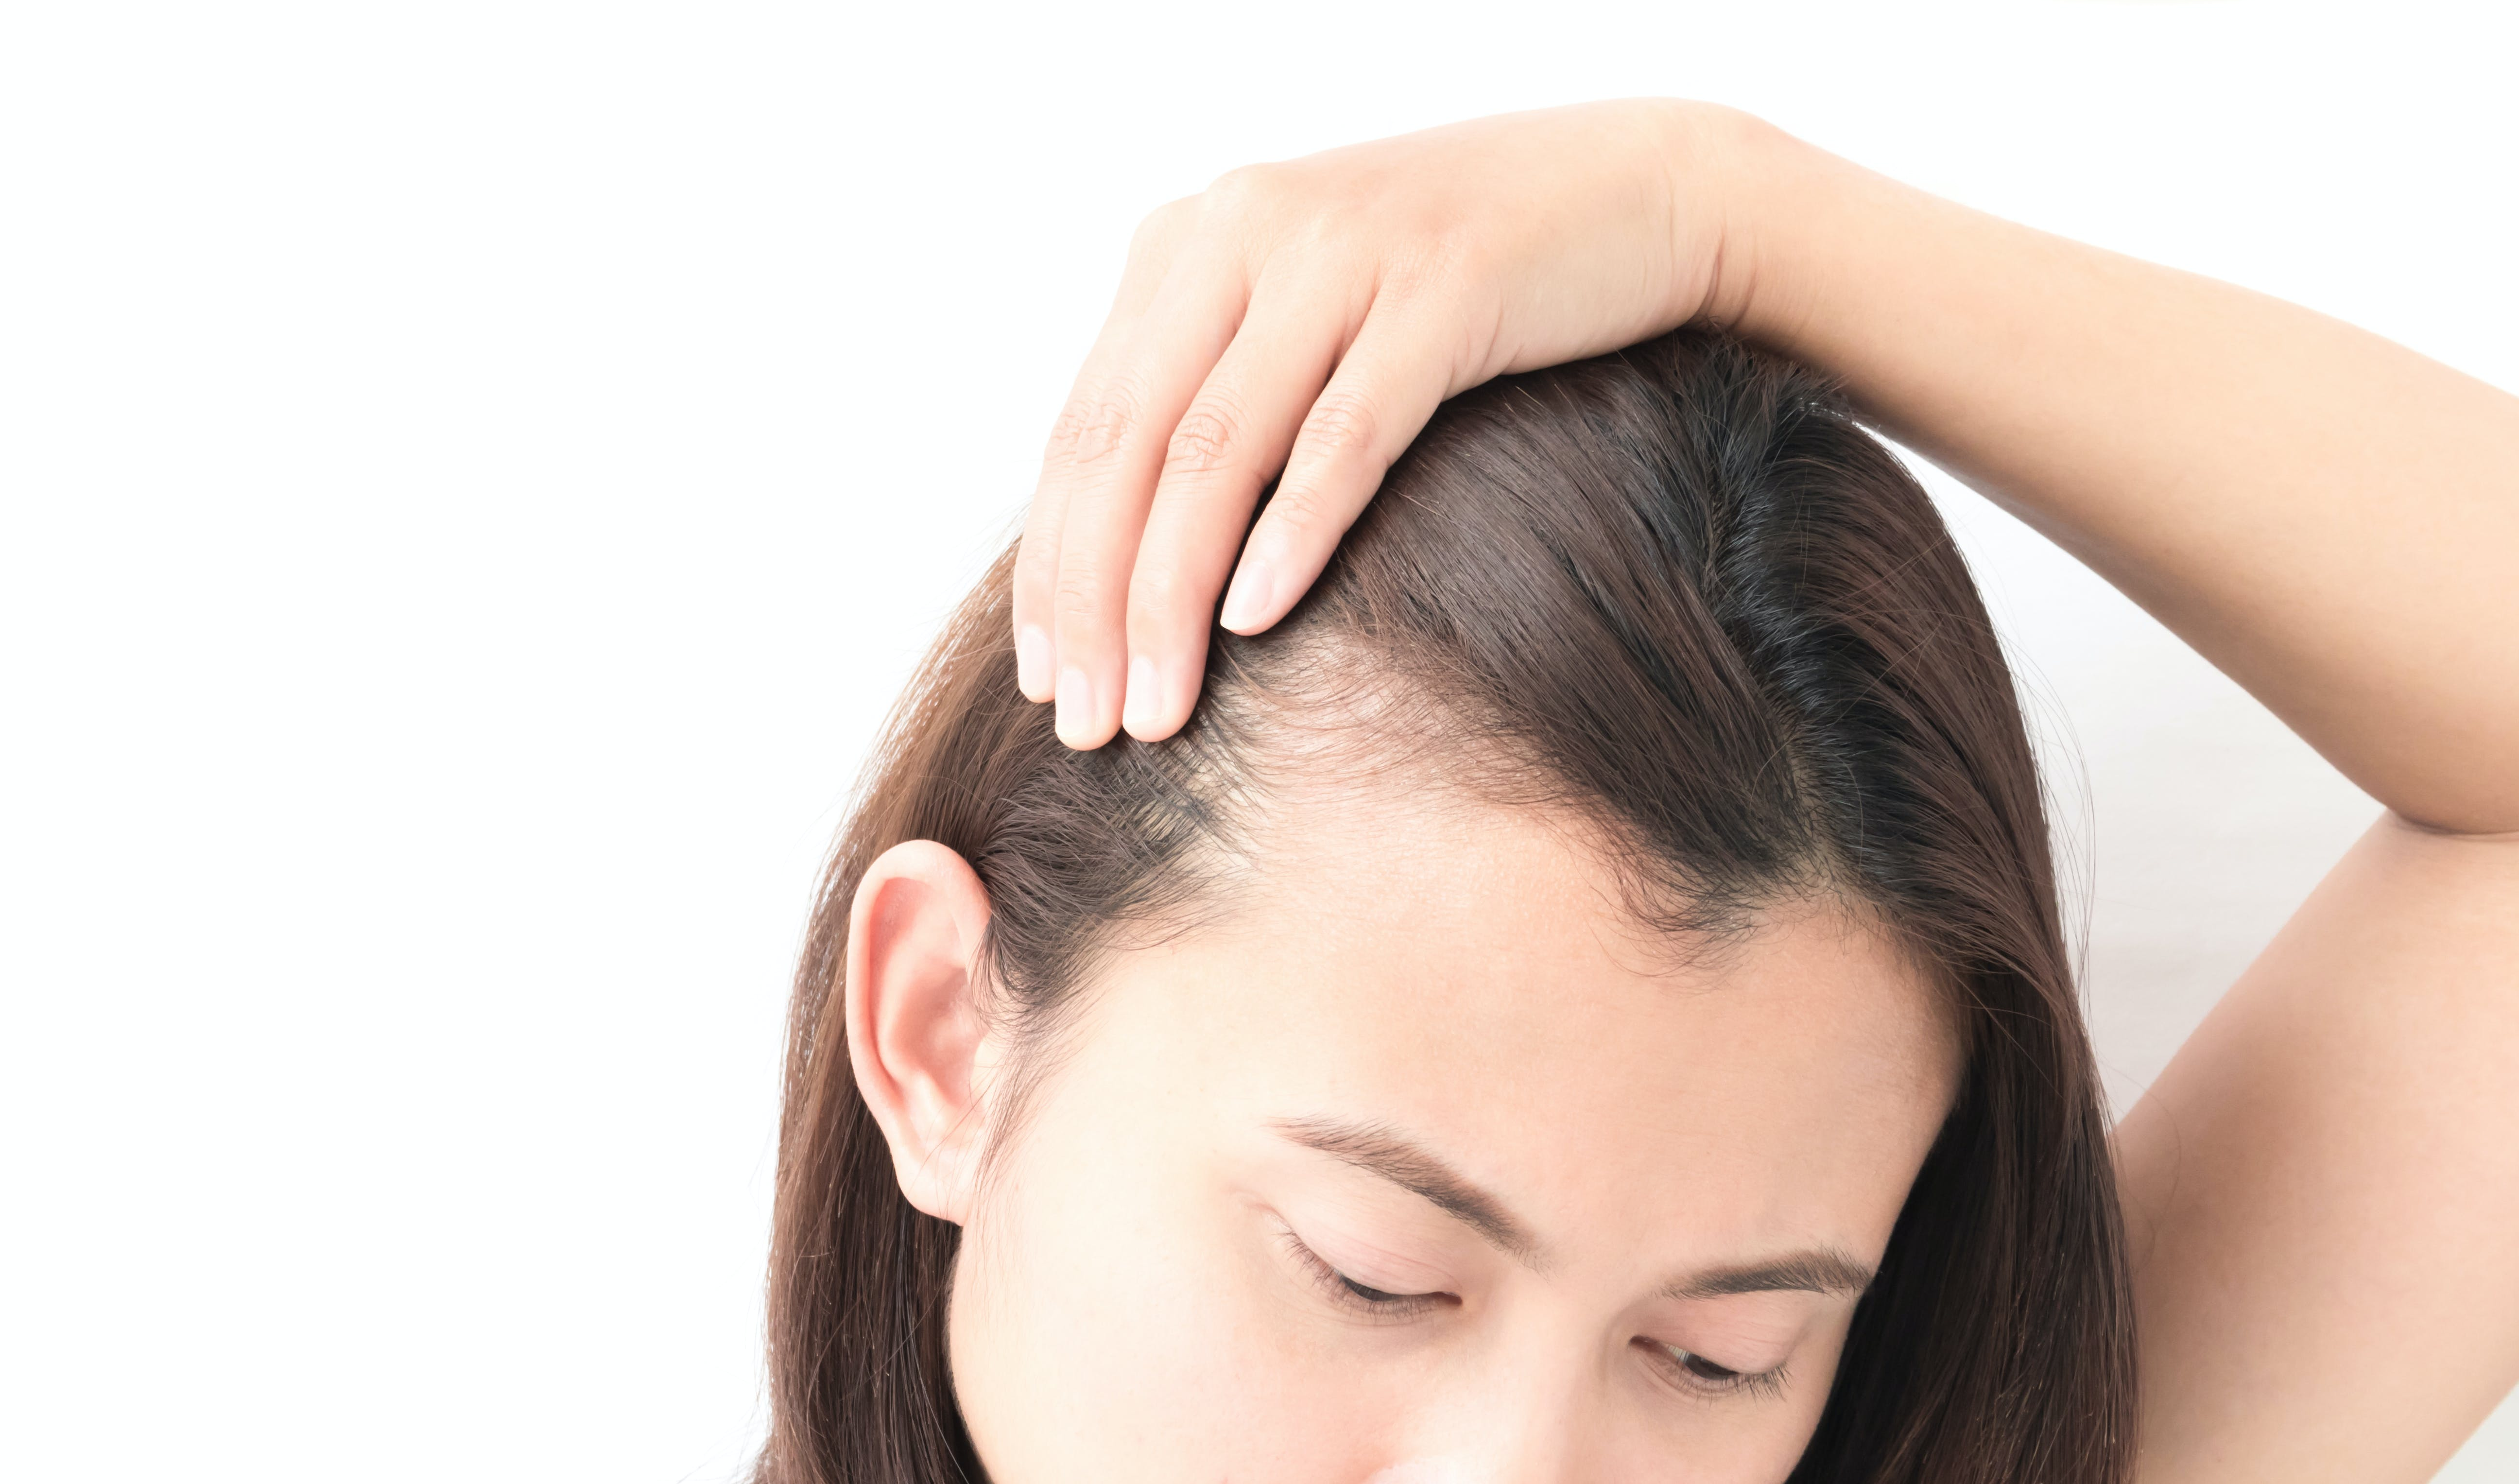 What Causes Traction Alopecia? And How Do You Treat It?